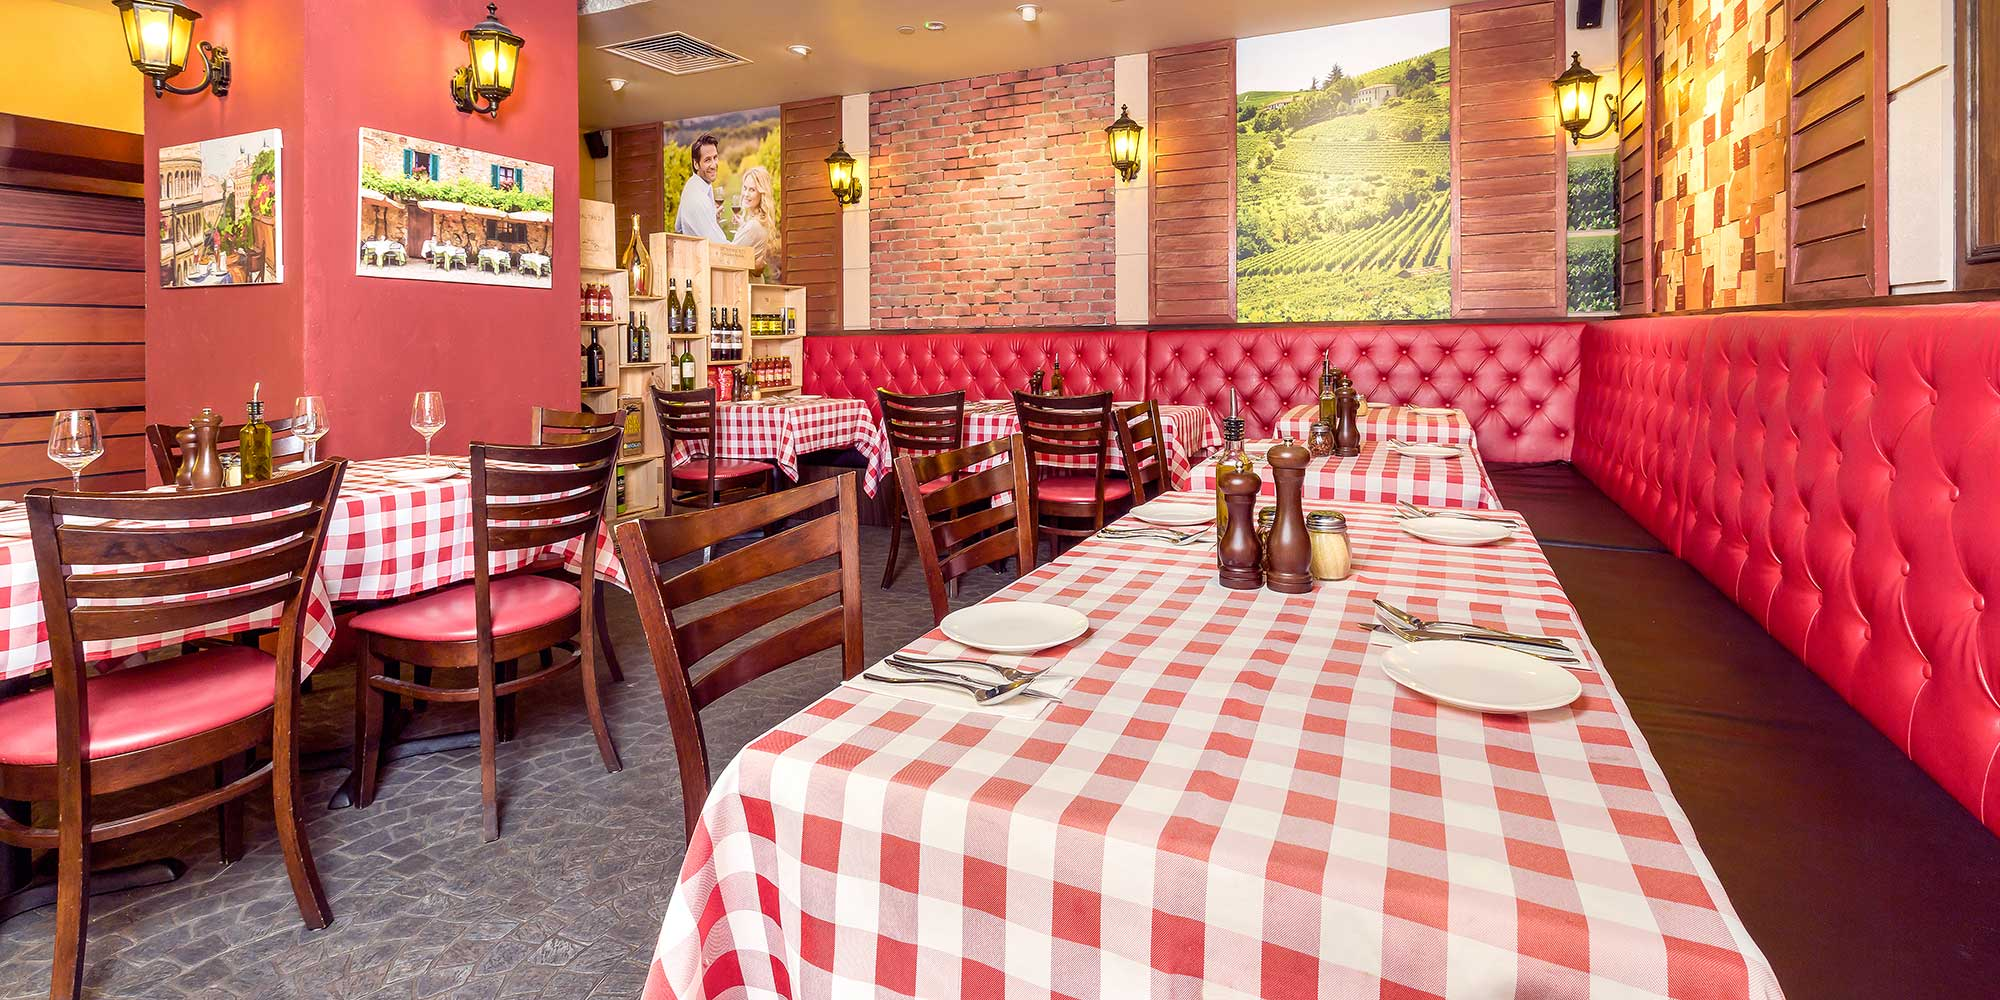 Tuscan Italian Restaurant - Authentic Tuscan Cuisine